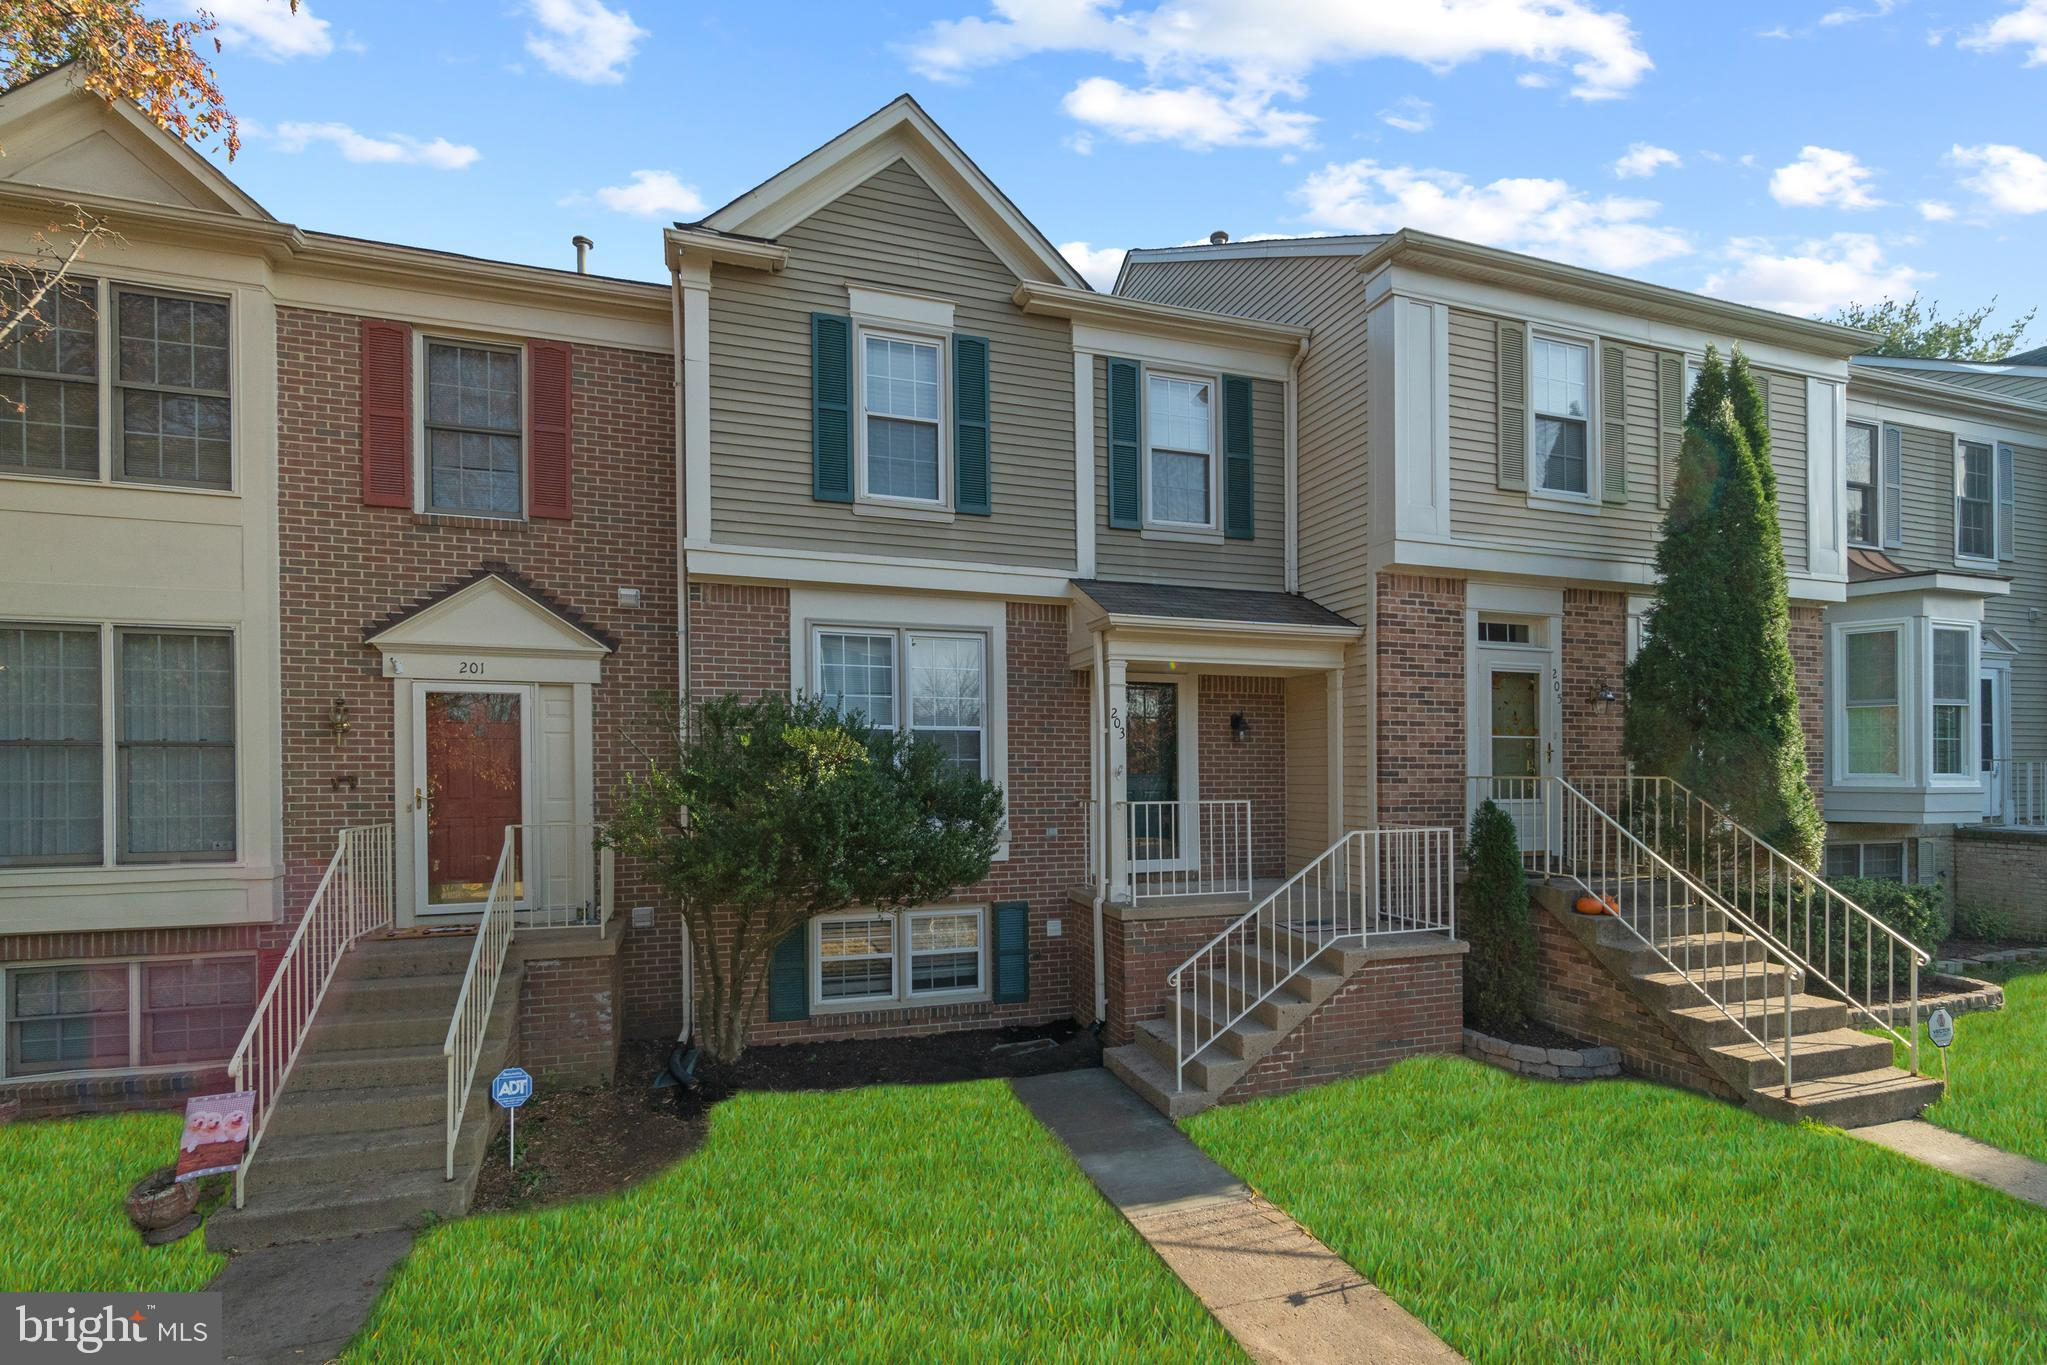 BEAUTIFUL 2 STORY WITH BASEMENT TOWNHOME. LOCATION MINUTES AWAY FROM I95 AND THE 17 COMMERICAL DISTR